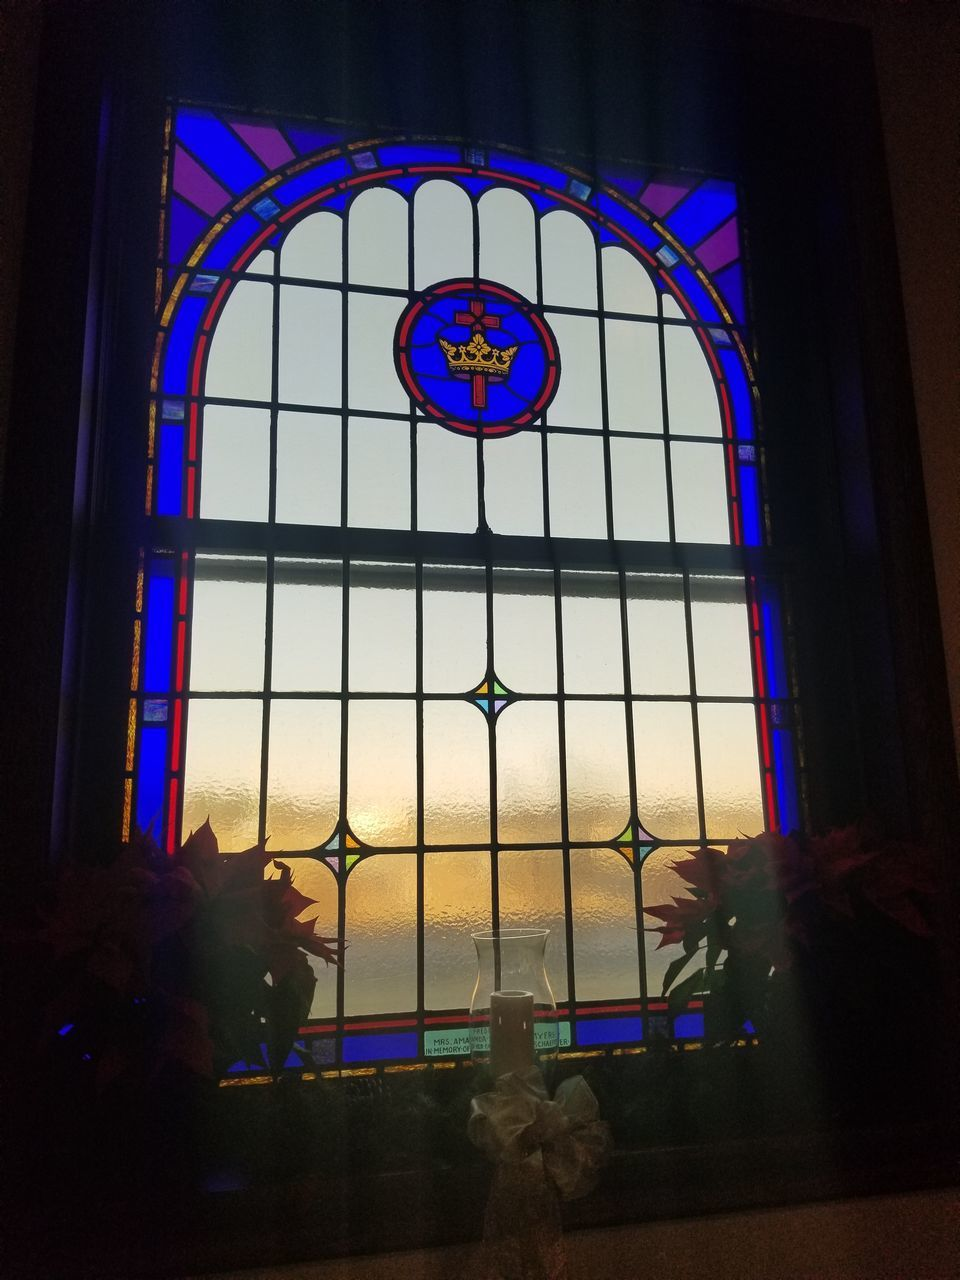 BUILDING SEEN THROUGH GLASS WINDOW OF CATHEDRAL